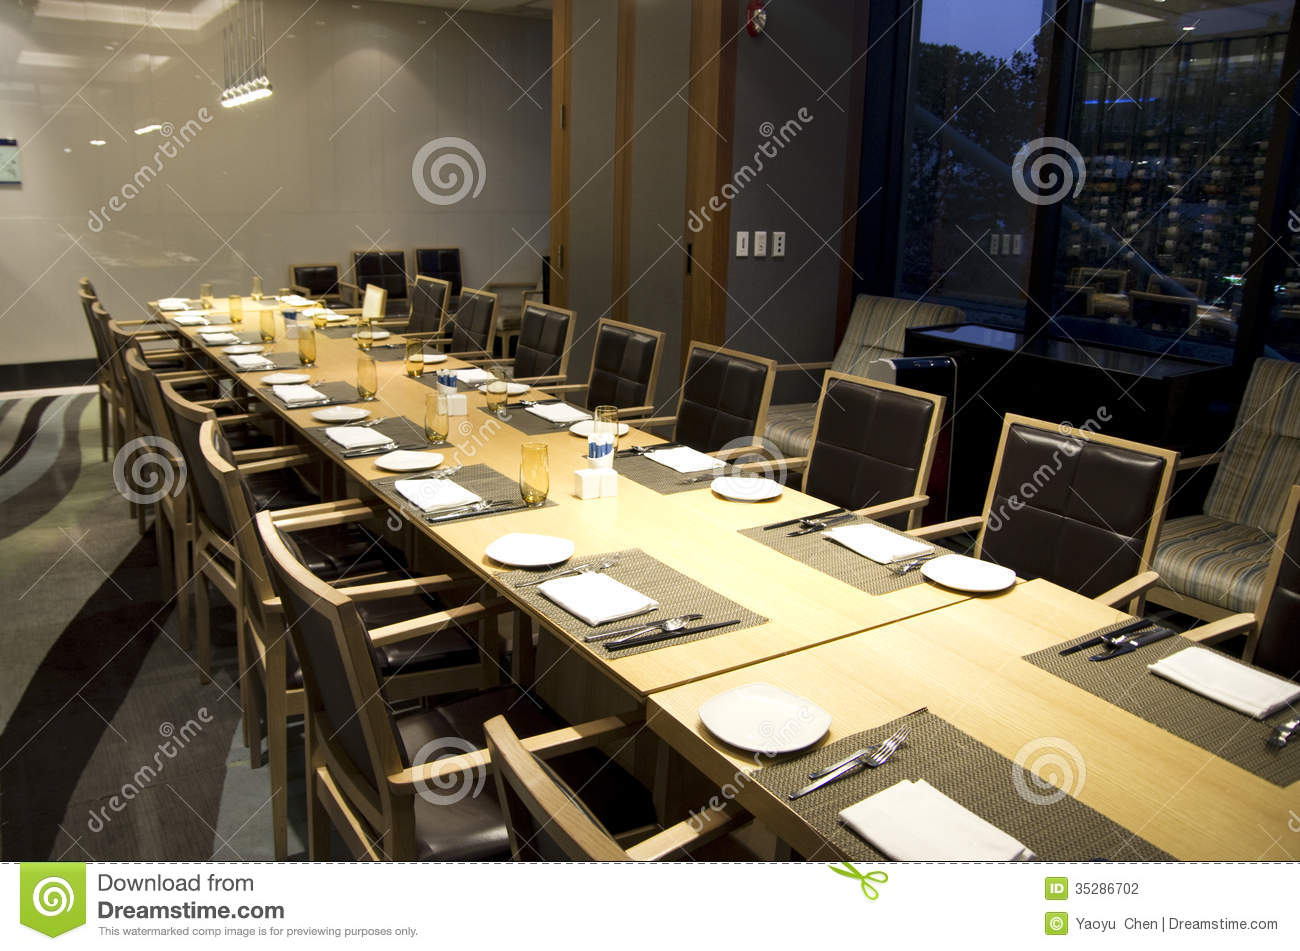 Business Meeting Dining Table In Hotel Restaurant Stock  : business meeting dining table hotel restaurant big private room 35286702 from www.dreamstime.com size 1300 x 951 jpeg 160kB